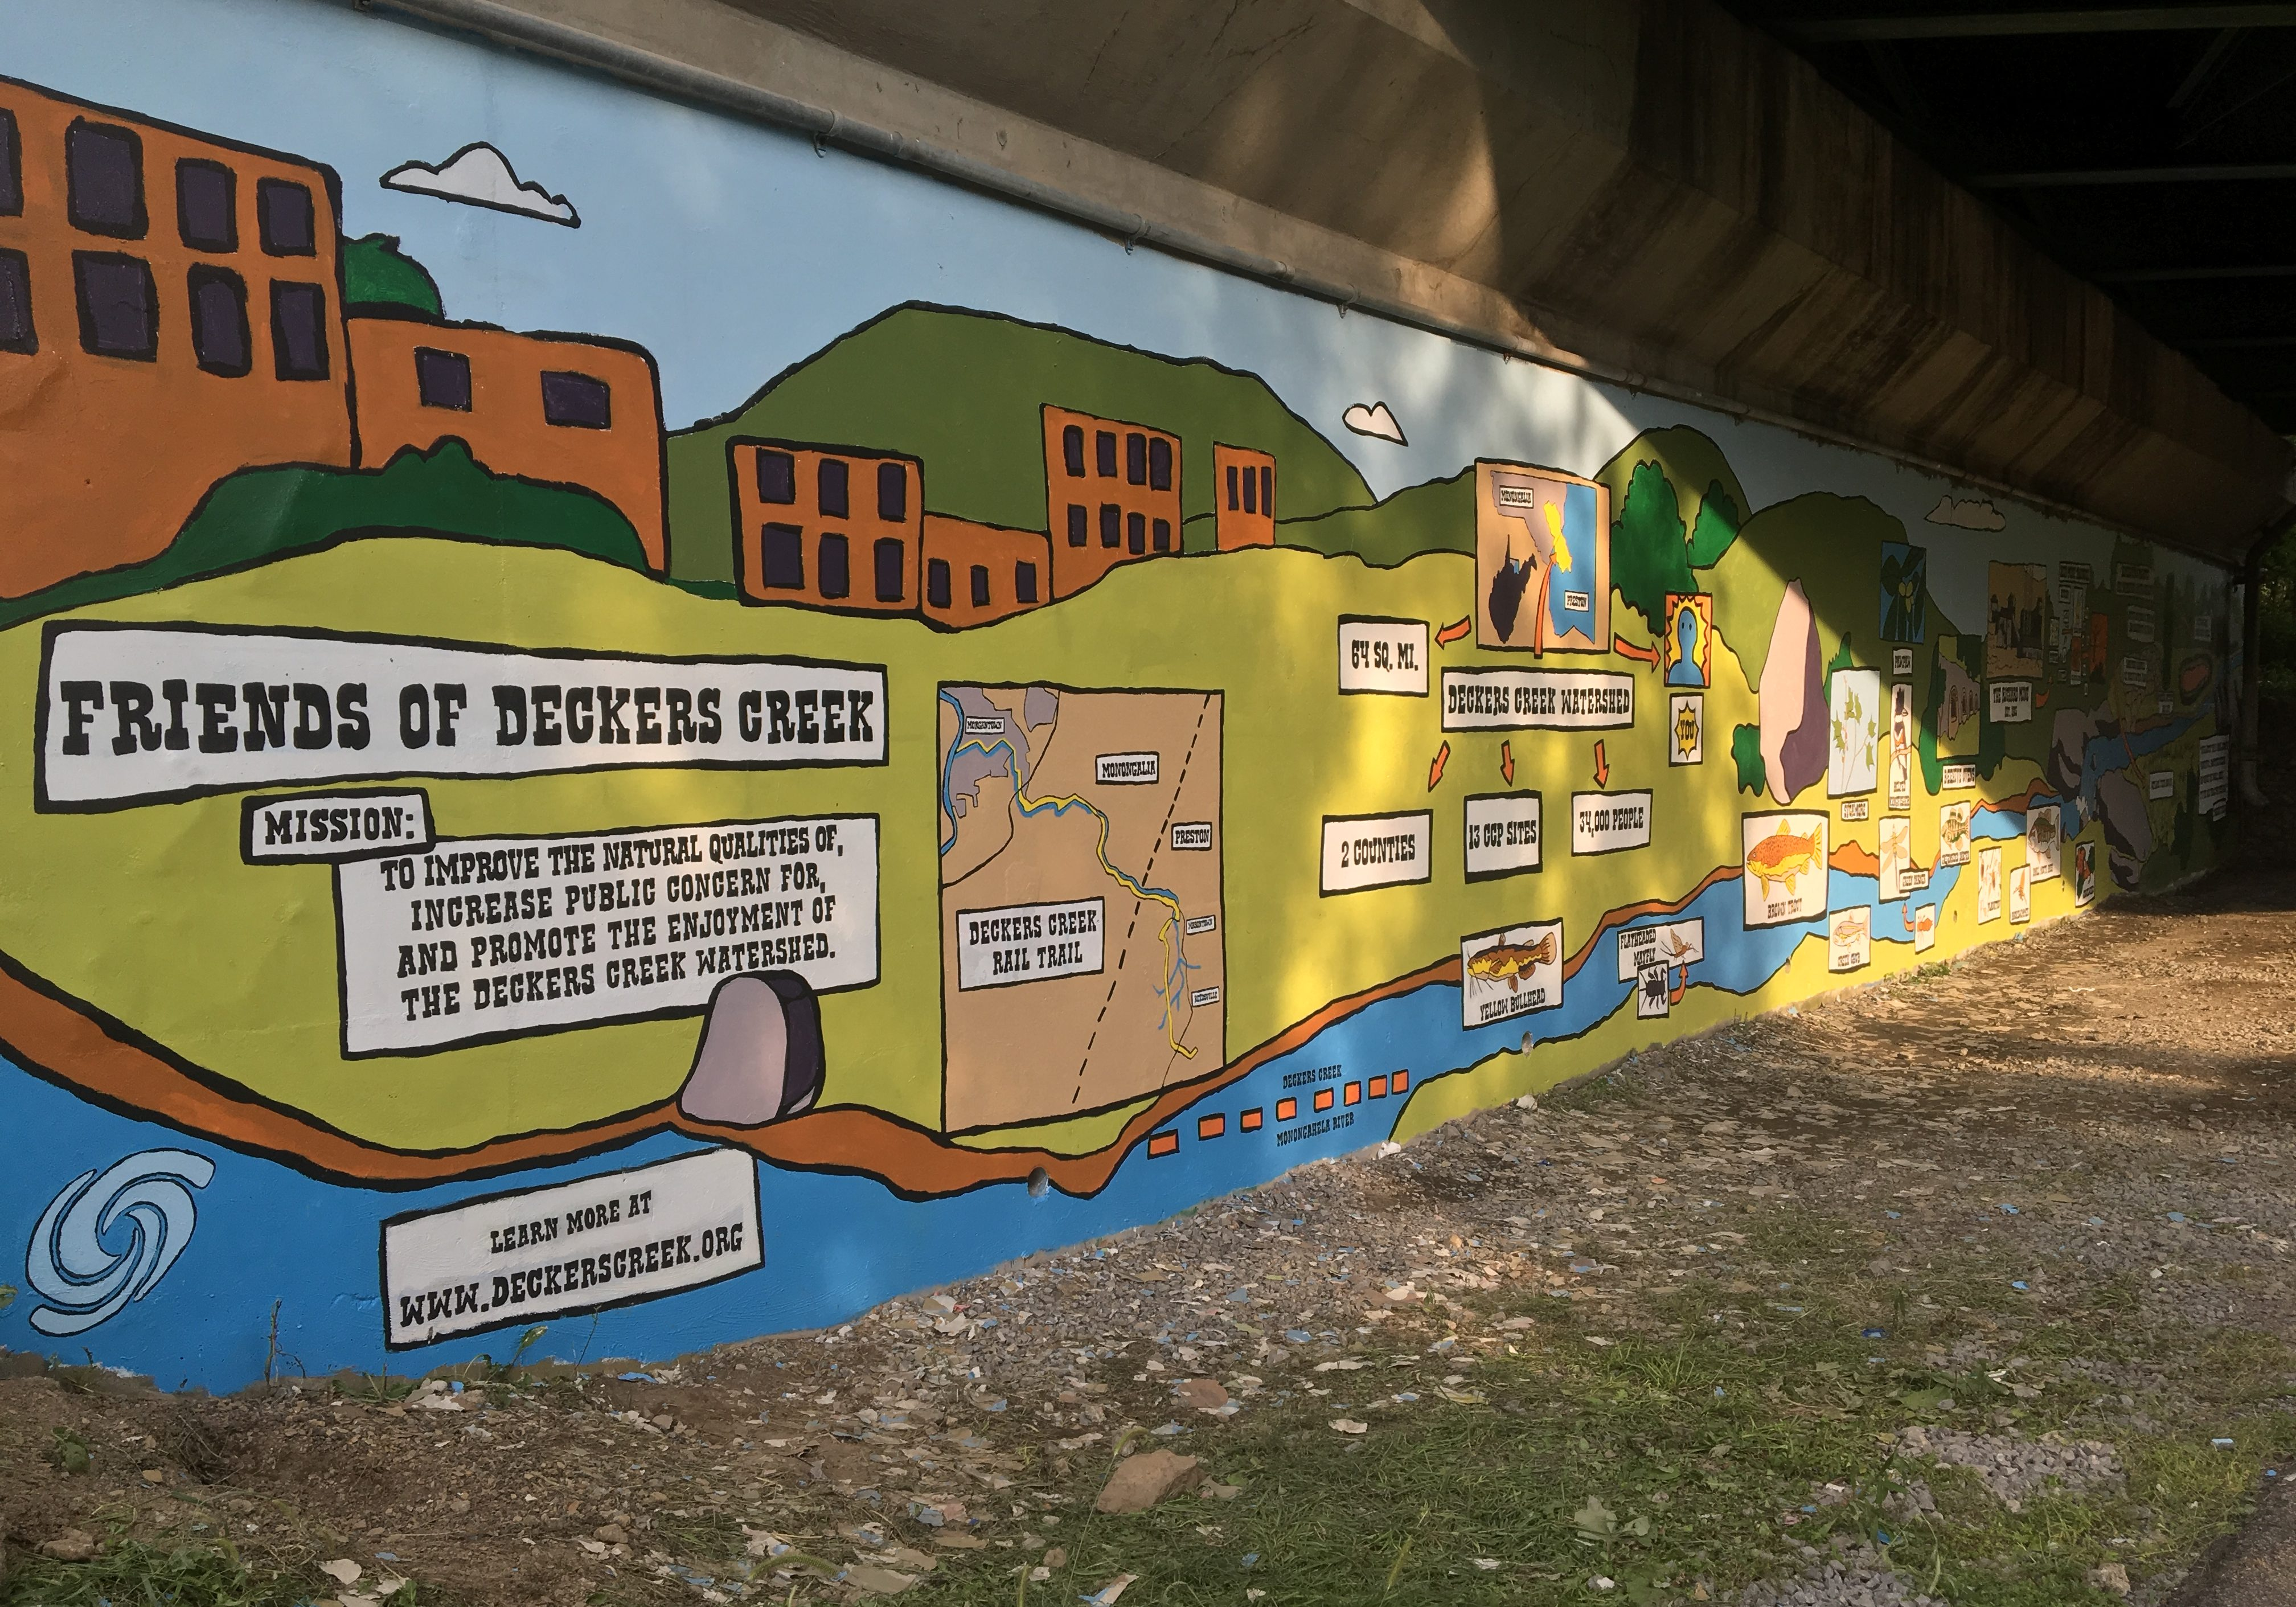 The Friends of Deckers Creek mural is both educational and artistic, a beautiful work of art along the Deckers Creek Rail Trail. Courtesy of Friends of Deckers Creek.